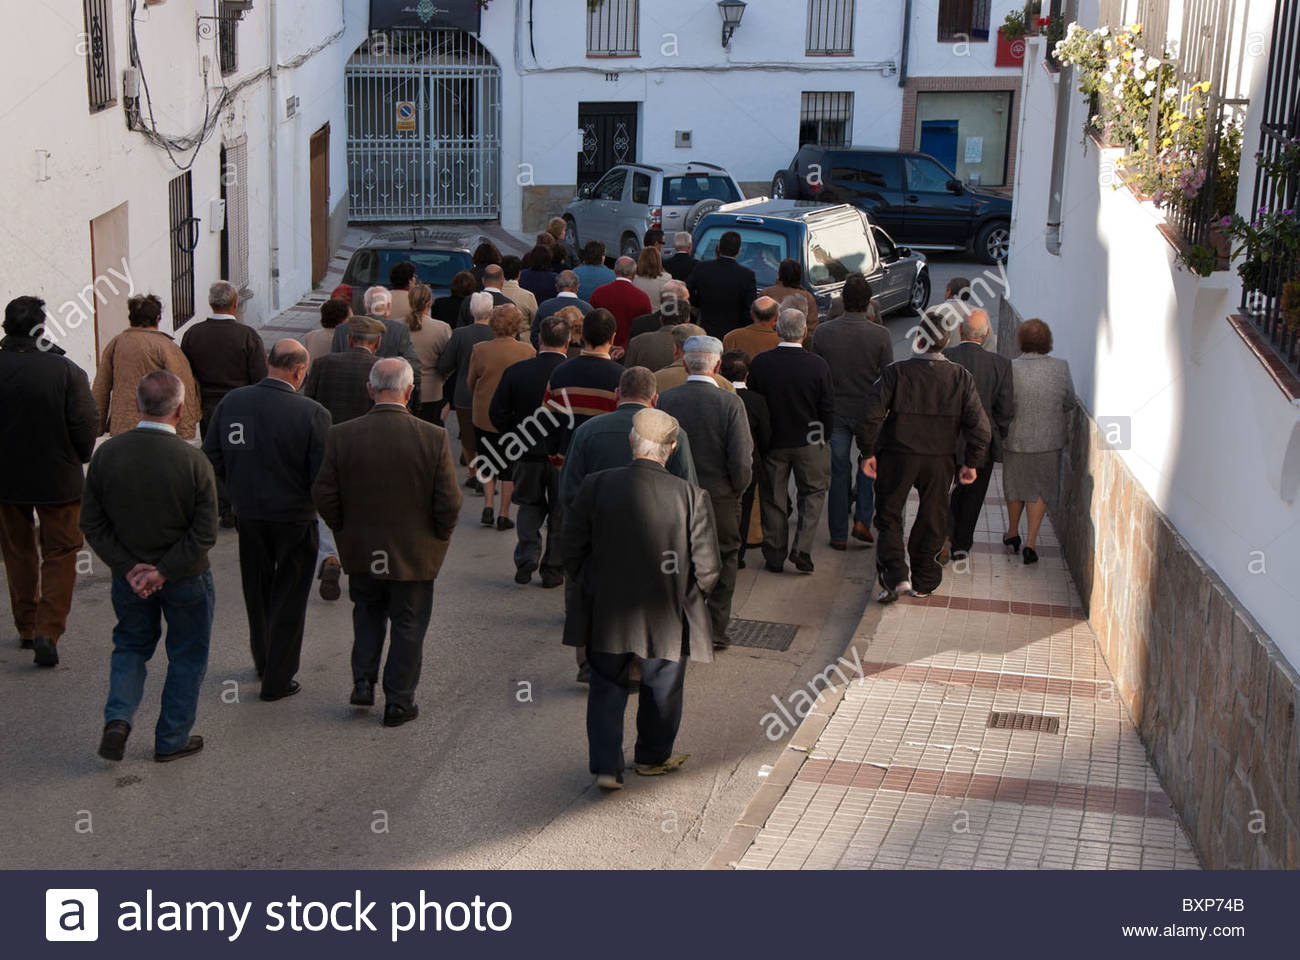 Mourners walk behind a hearse down a quiet side street in Gaucin, Spain. - Stock Image